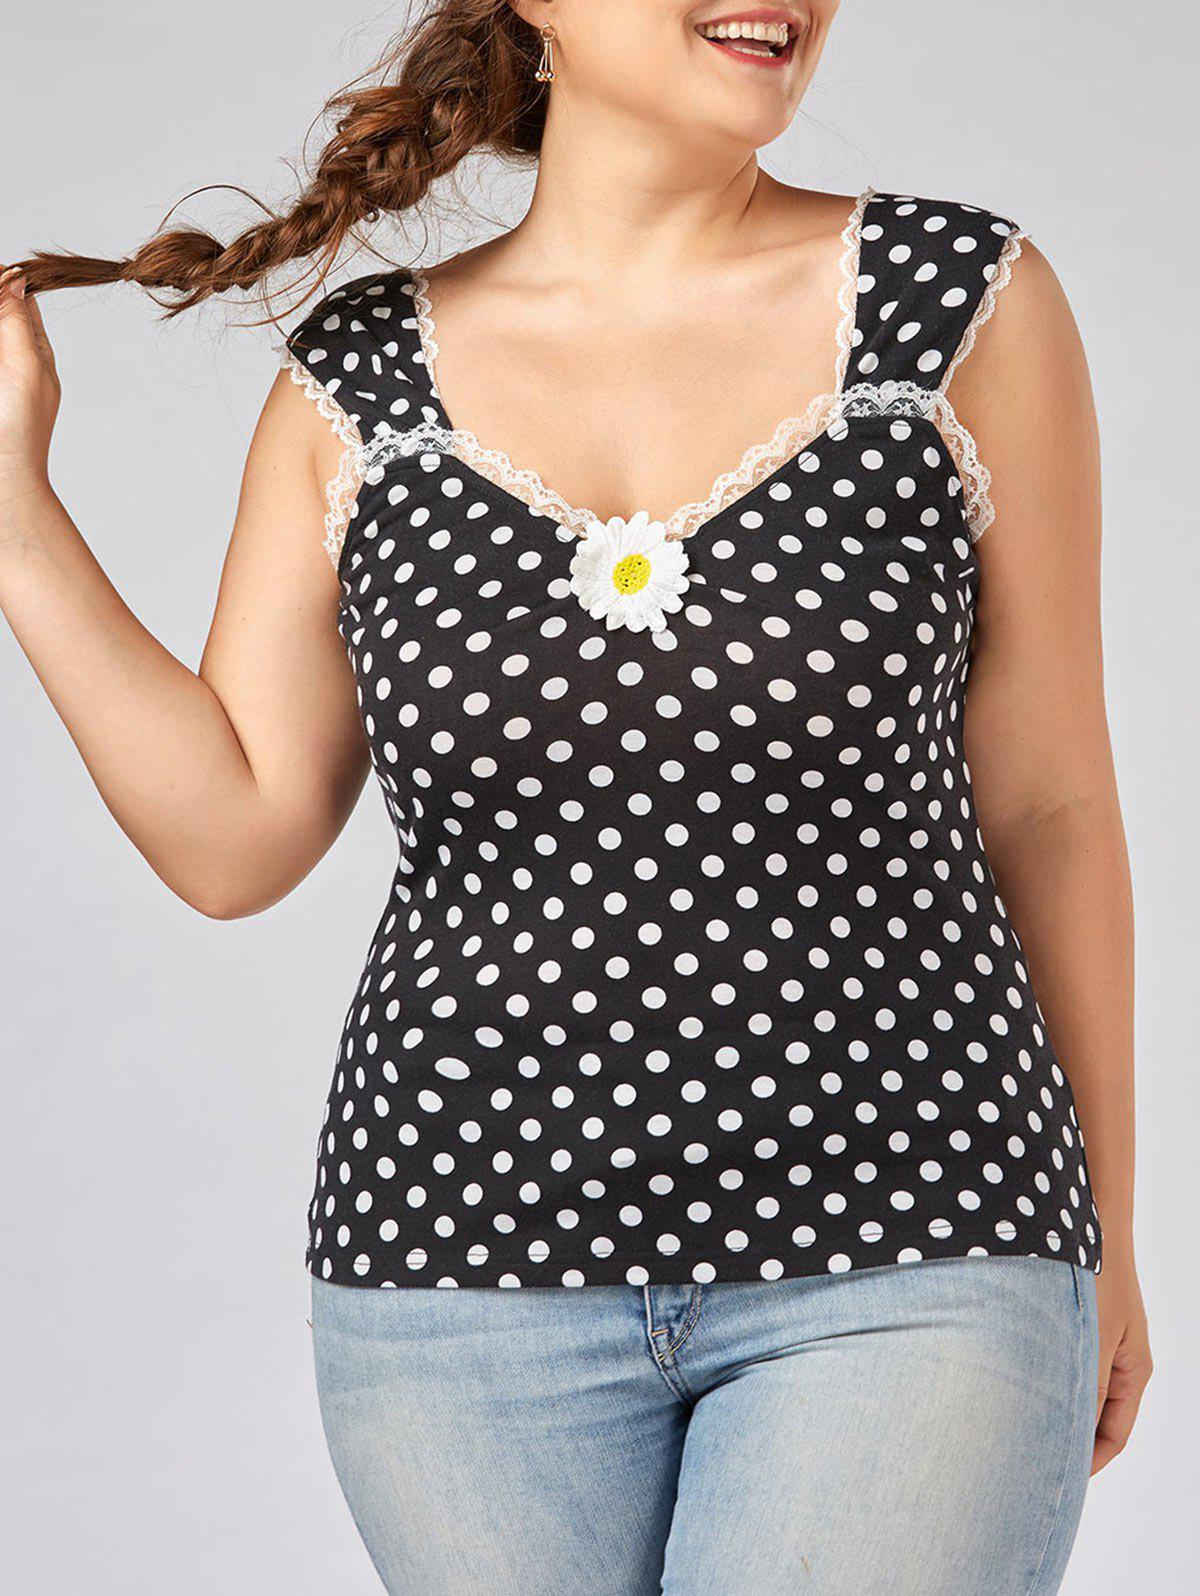 Top Patched De Polka Dot Plus Size - Polka Dot XL